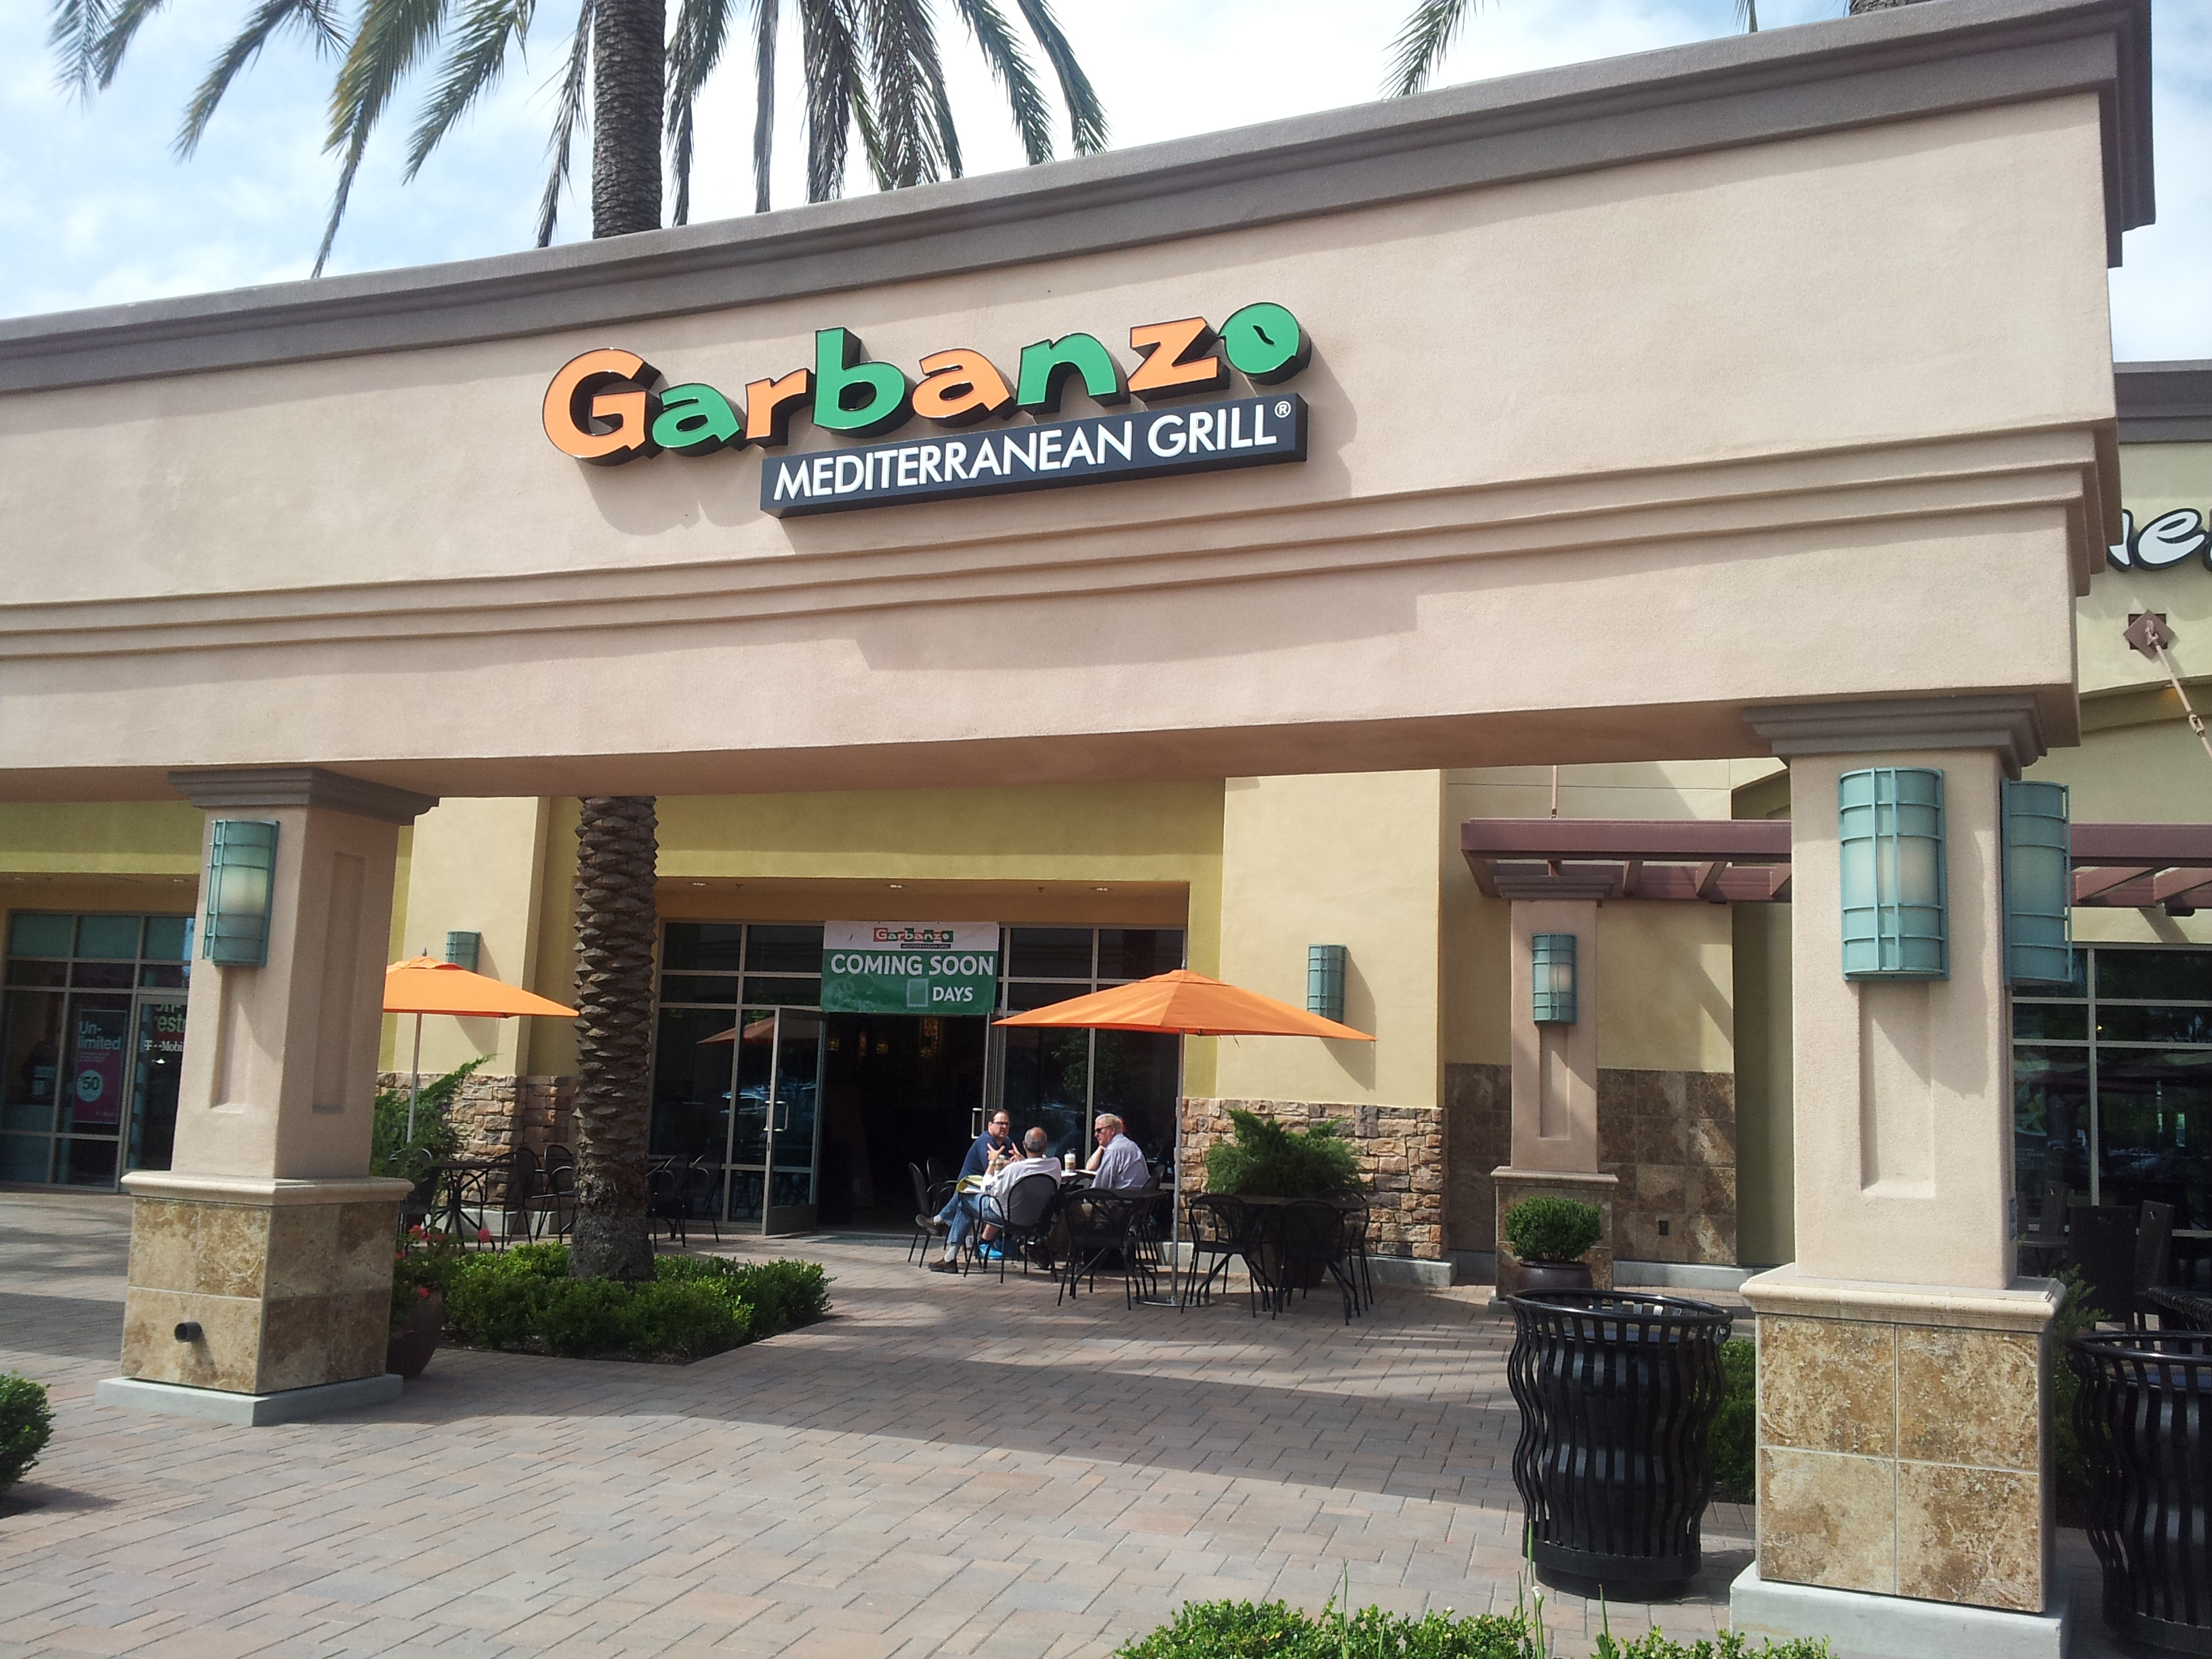 Garbanzo in Aliso Viejo, CA